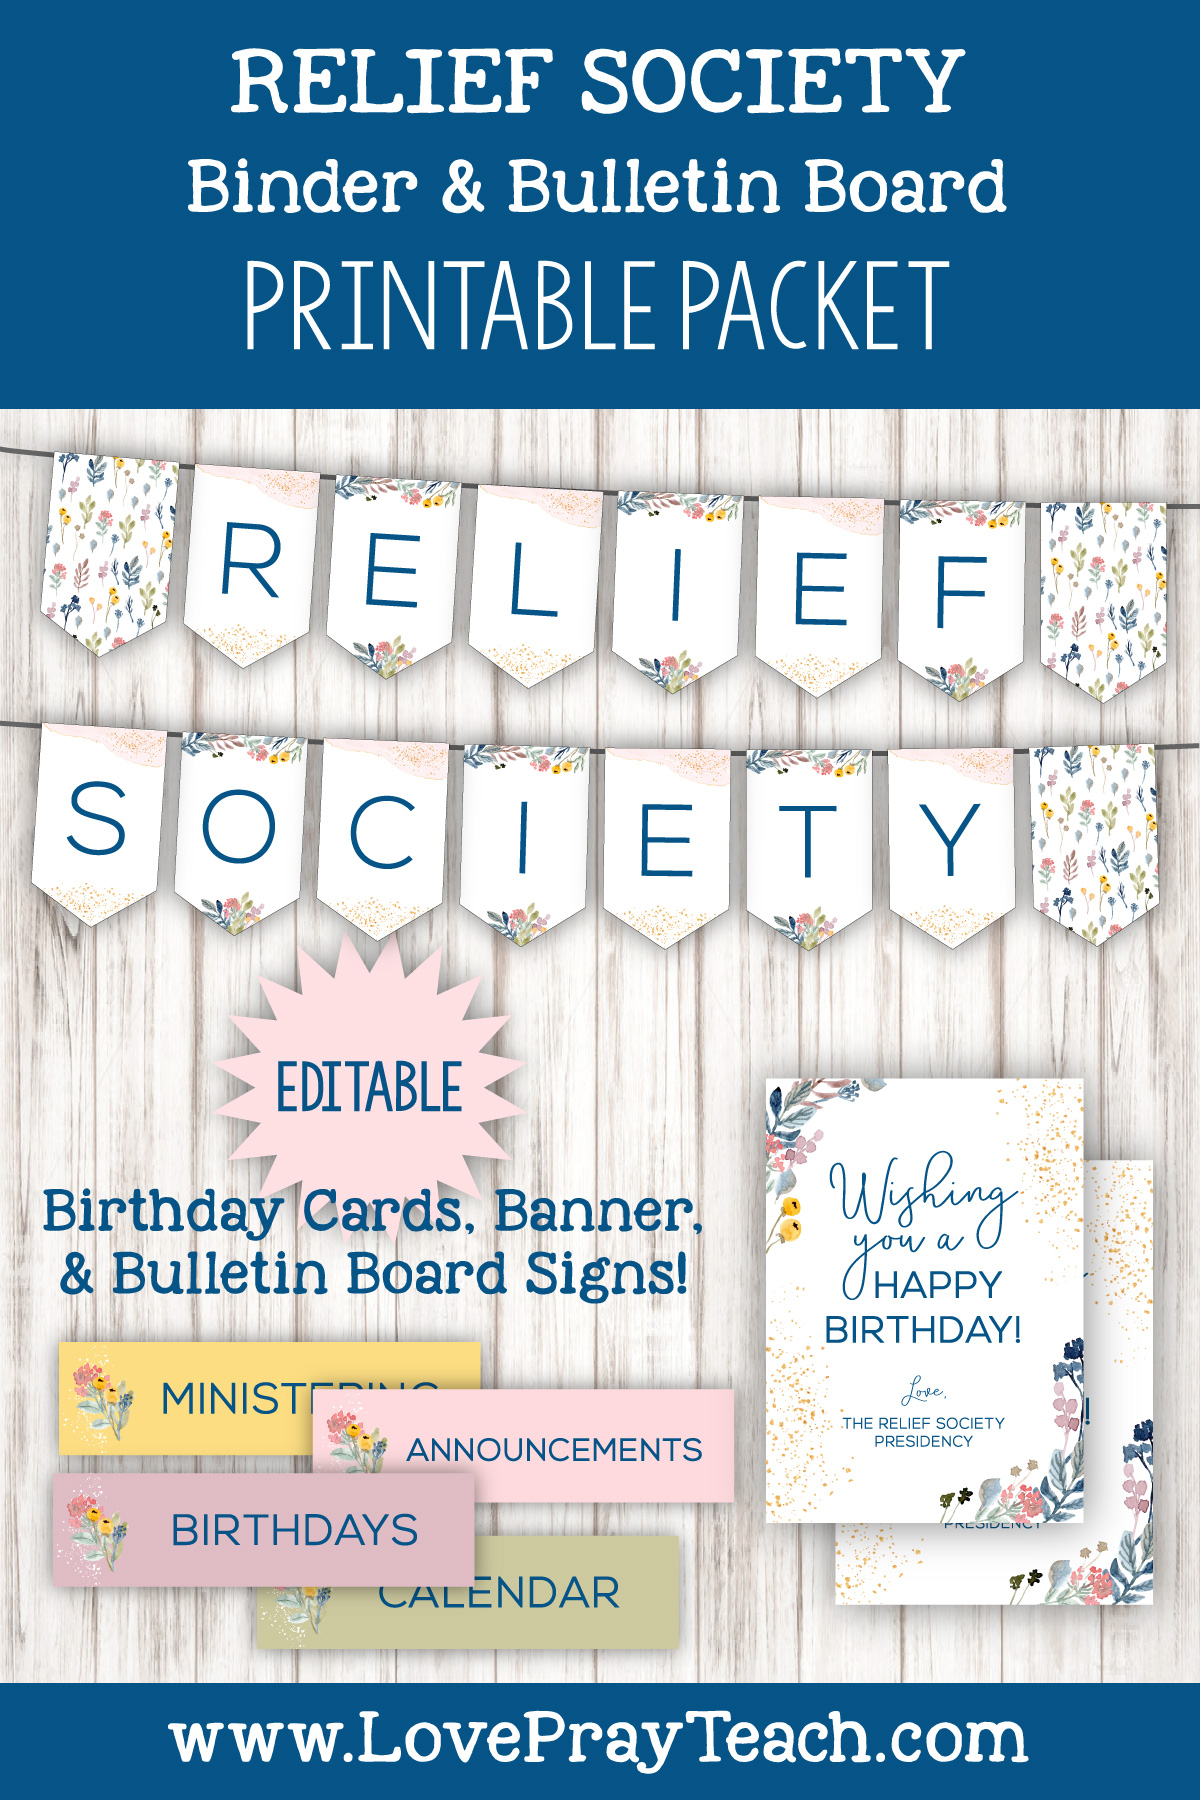 Relief Society Bulletin Board and Binder Printable Packet by LovePrayTeach.com